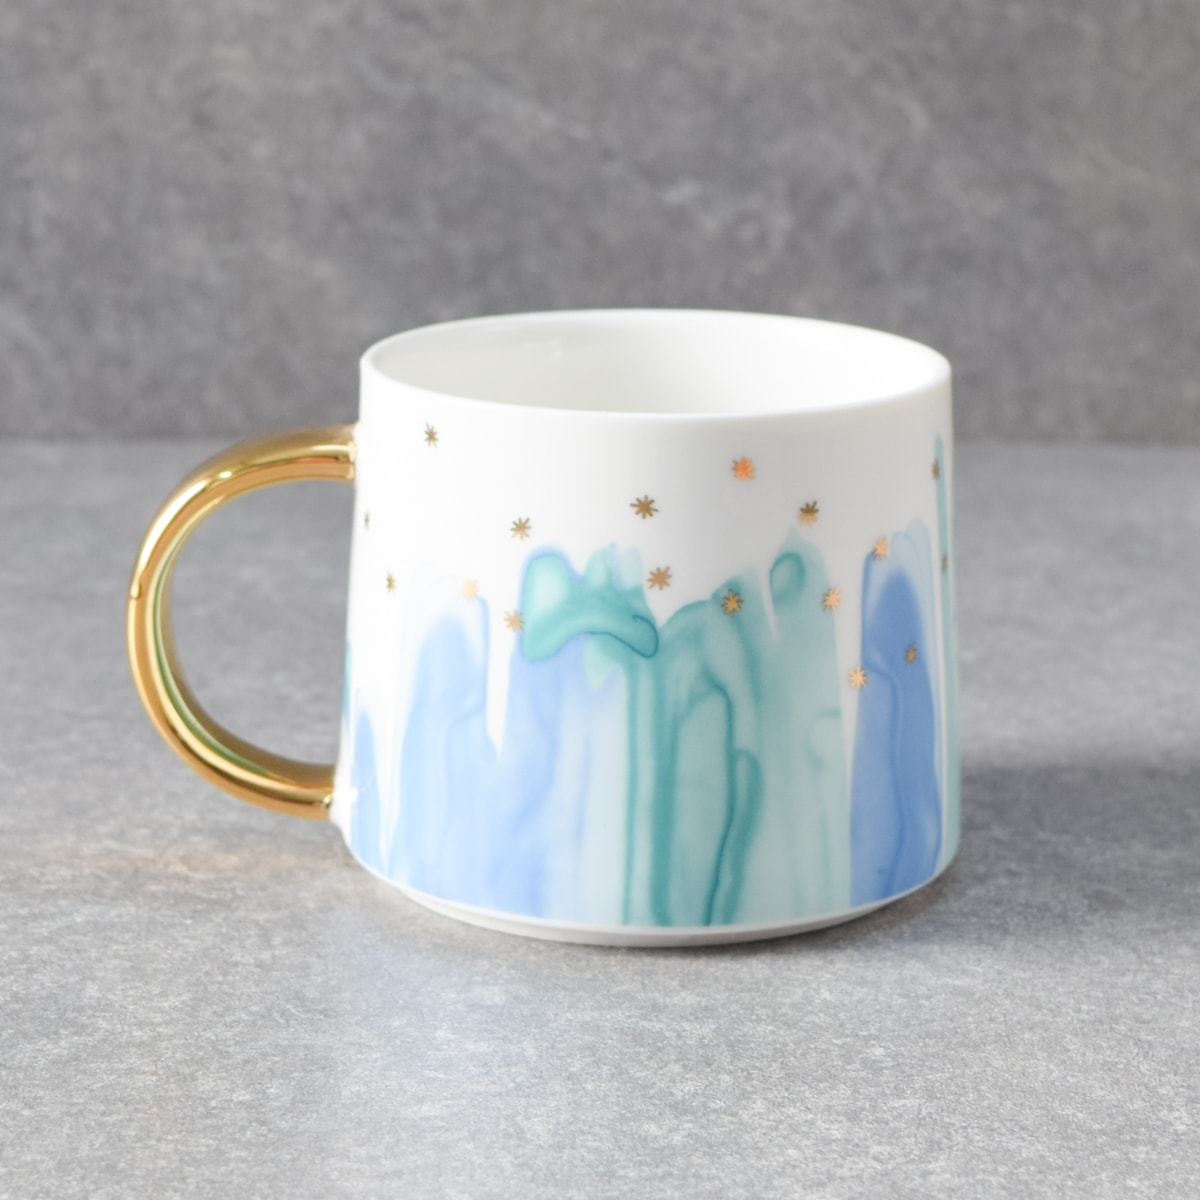 Jacob Blue and Green Ceramic Cup with Golden Handle